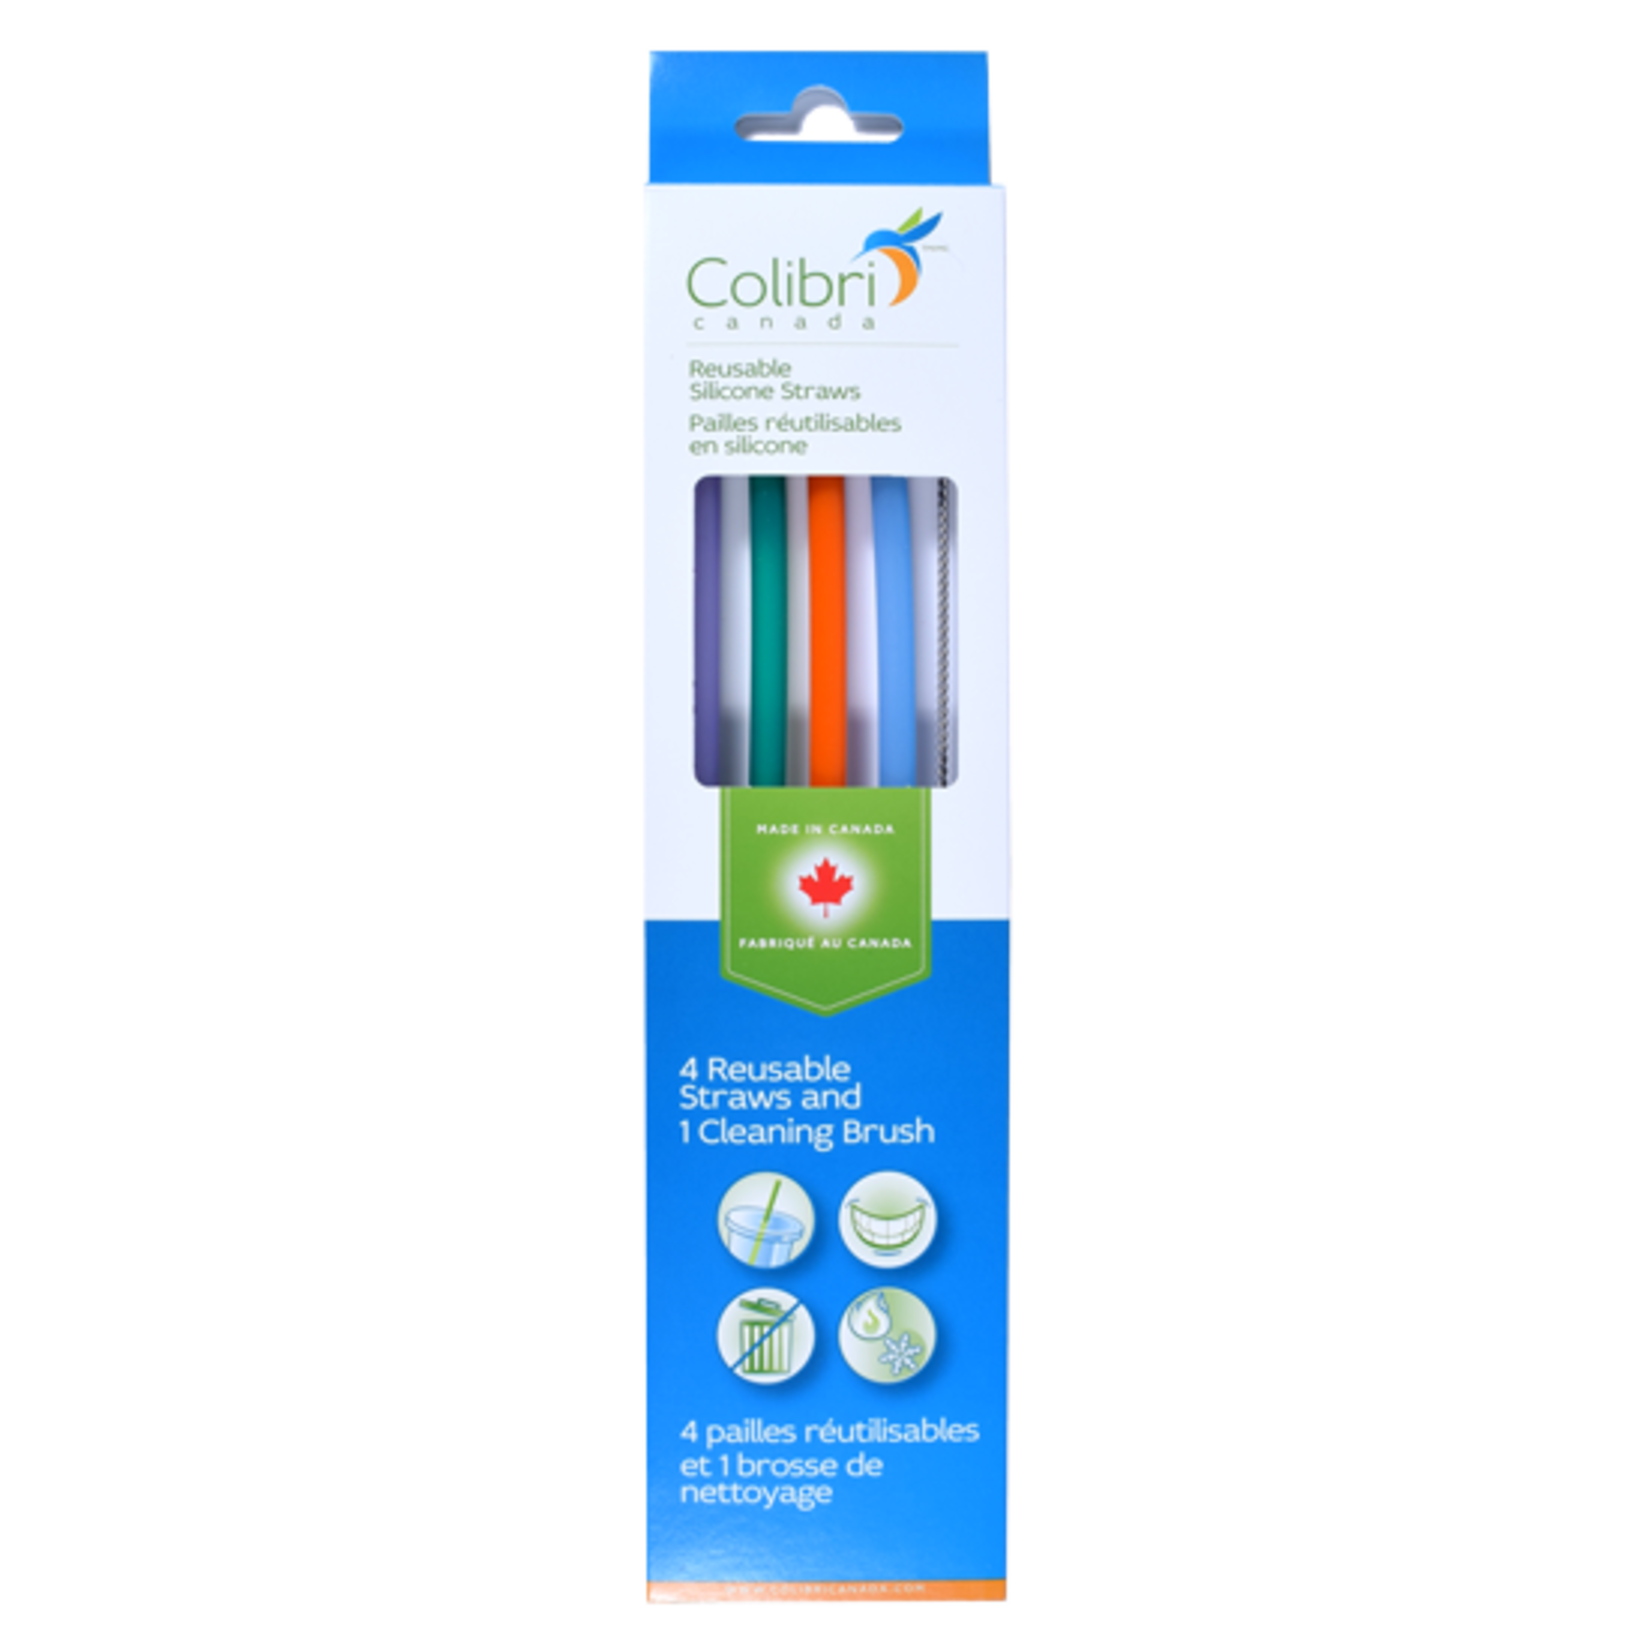 REUSABLE SILICONE STRAWS - 4 PACK